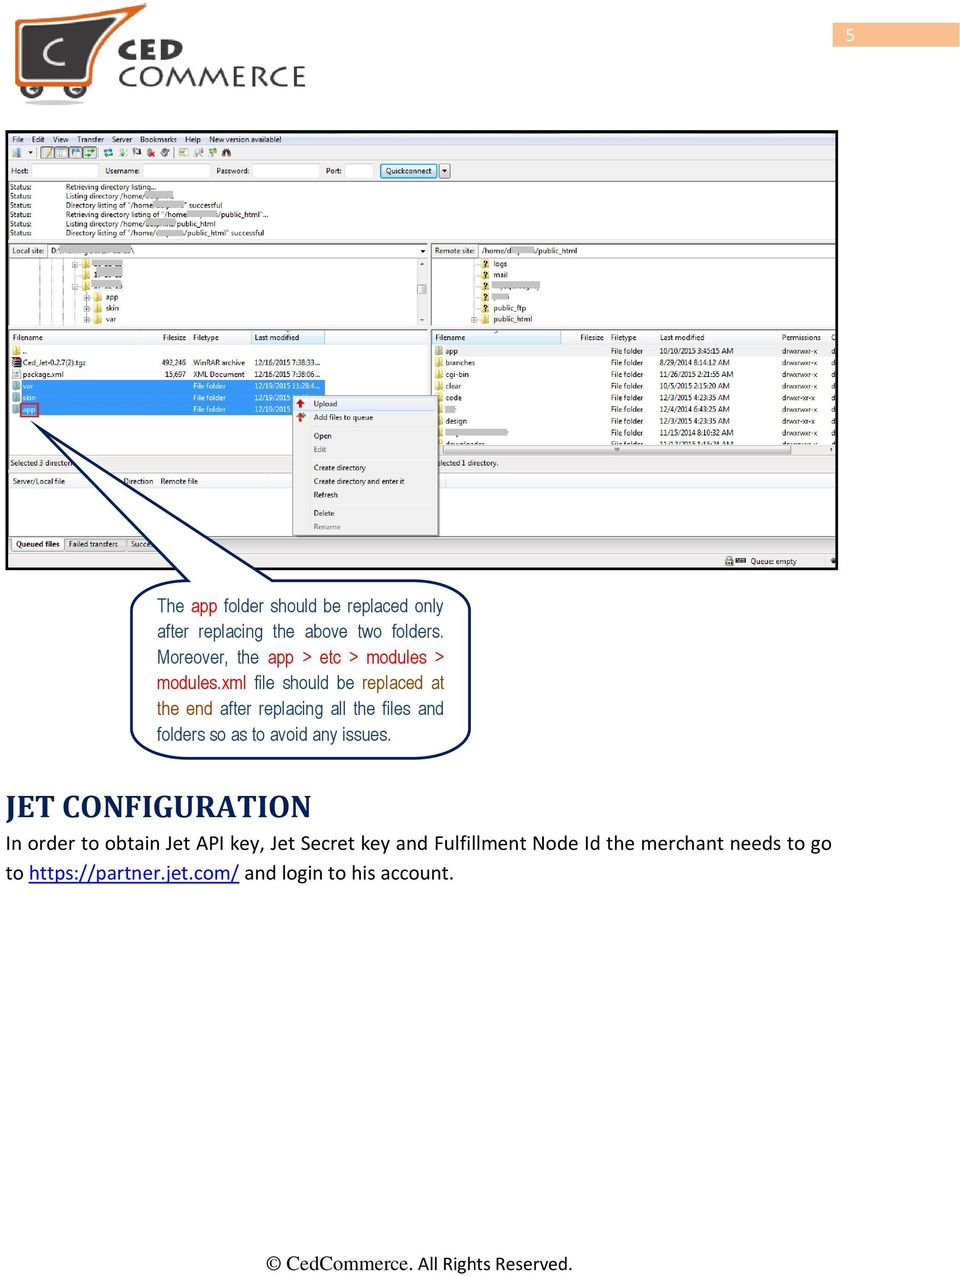 xml file should be replaced at the end after replacing all the files and folders so as to avoid any